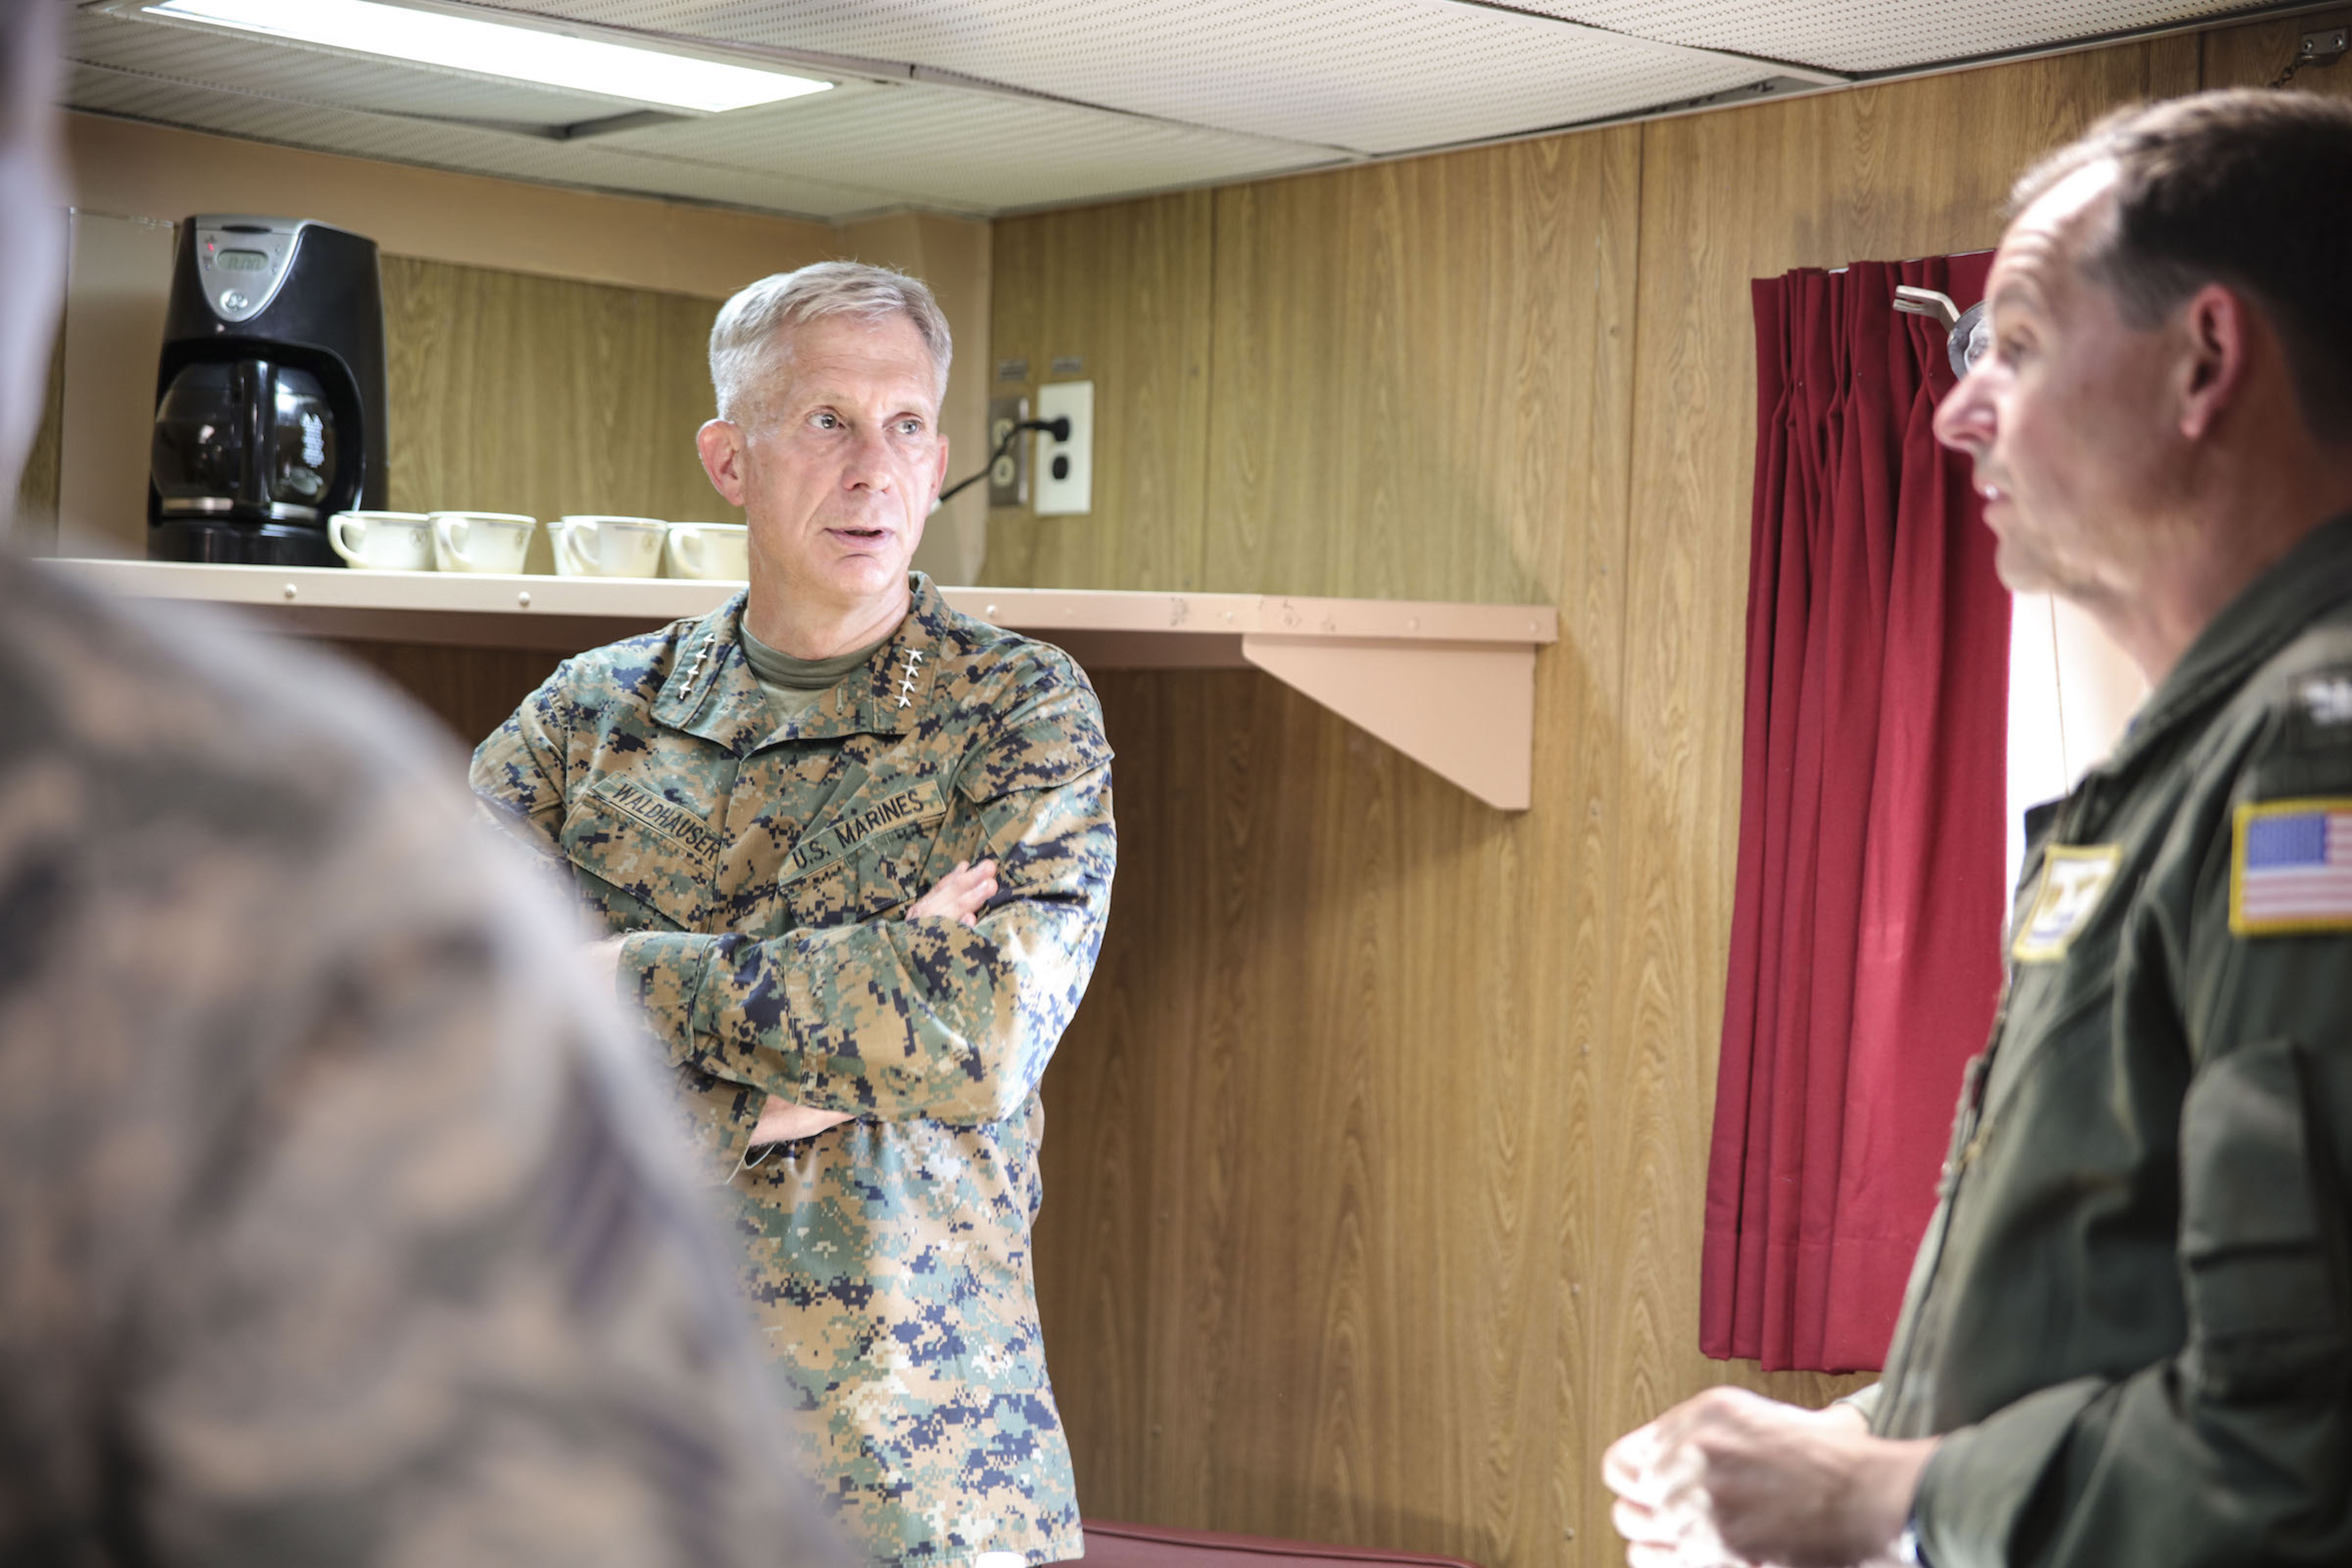 MEDITERRANEAN SEA (Sept. 6, 2017) U.S. Marine Gen. Thomas D. Waldhauser, commander, U.S. Africa Command, left, speaks with Capt. Max Clark, commanding officer of the San Antonio-class amphibious transport dock ship USS Mesa Verde (LPD 19) about maritime operations during a visit Sept. 6, 2017. The ship is deployed with the Bataan Amphibious Ready Group and 24th Marine Expeditionary Unit to support maritime security operations and theater security cooperation efforts in the U.S. 6th Fleet area of operations. (U.S. Navy photo by Mass Communication Specialist 2nd Class Brent Pyfrom/Released)